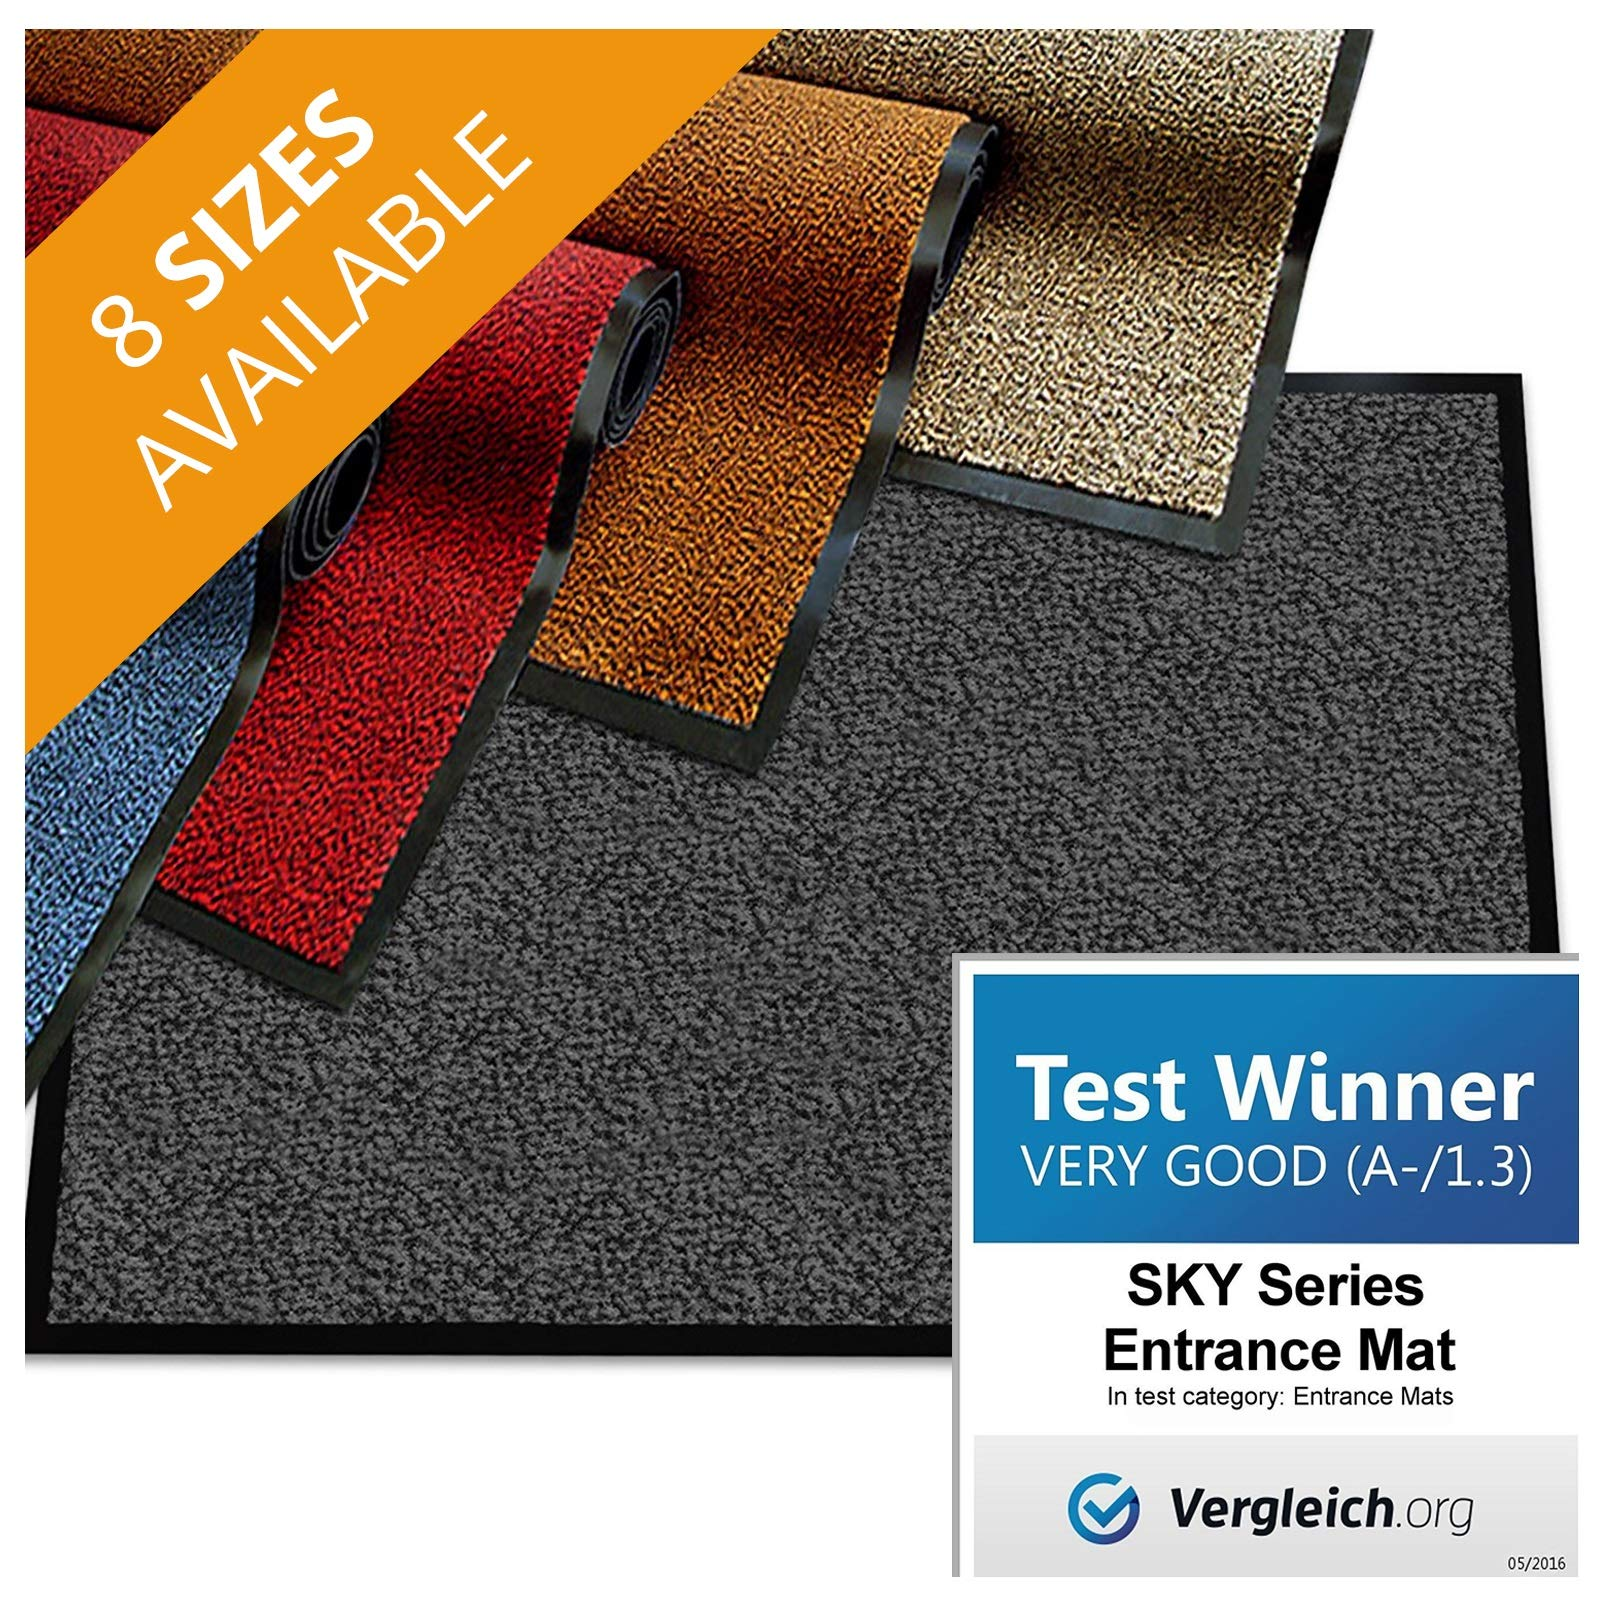 Premium Entry Mat | Entrance Mat Comparison Test Score: Very Good (A-/1.3) | Ideal as Front Door Mat or Entry Rug | Beige Black - 48'' x 120''